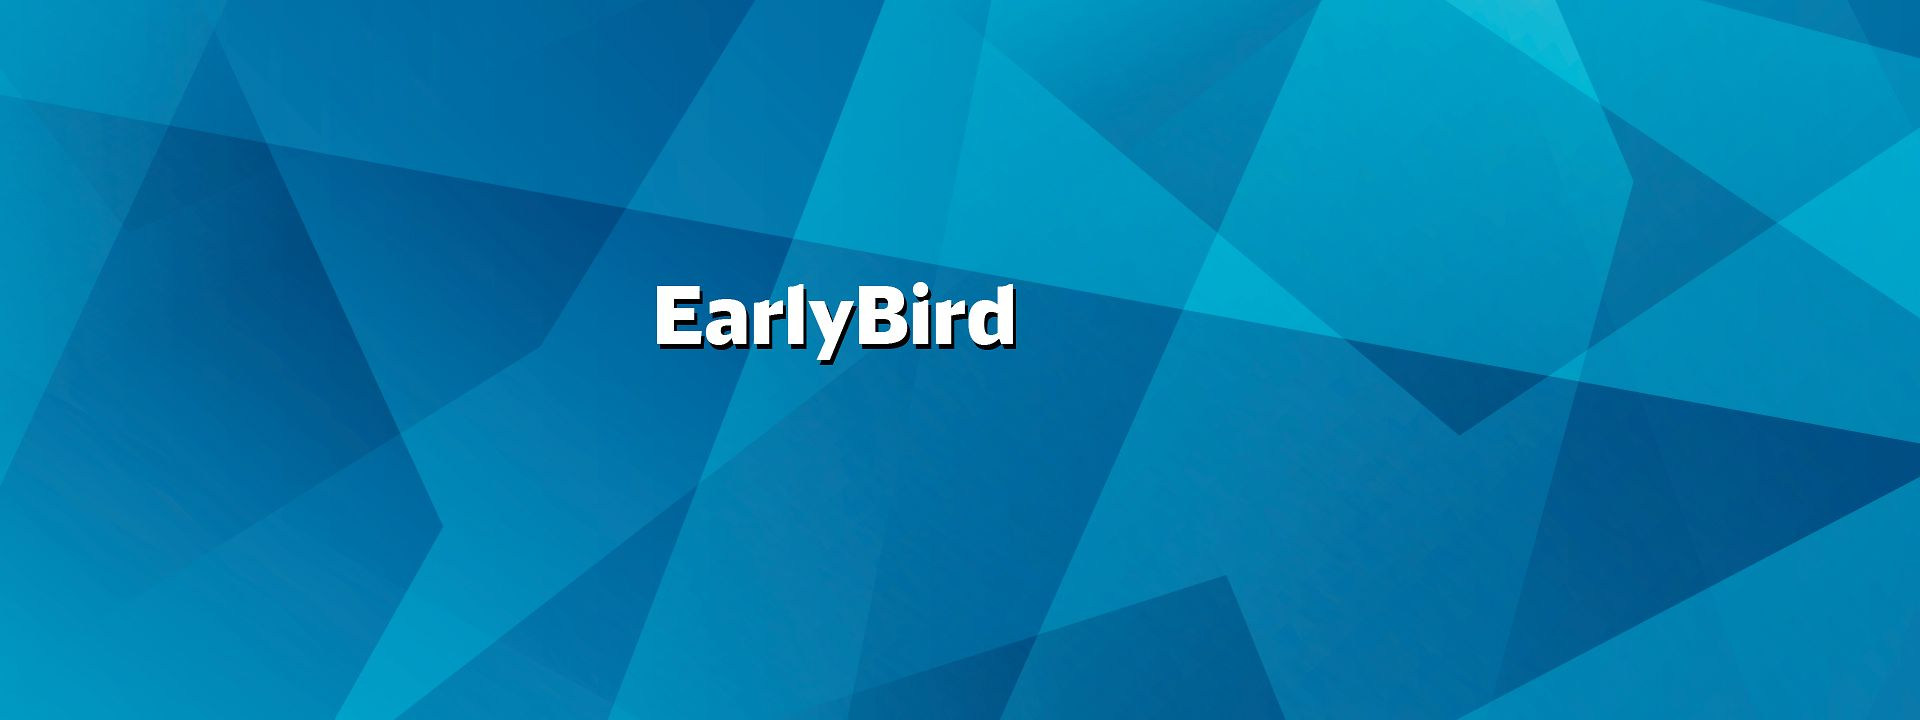 DB Systel_Early Bird_Frühwarnsystem